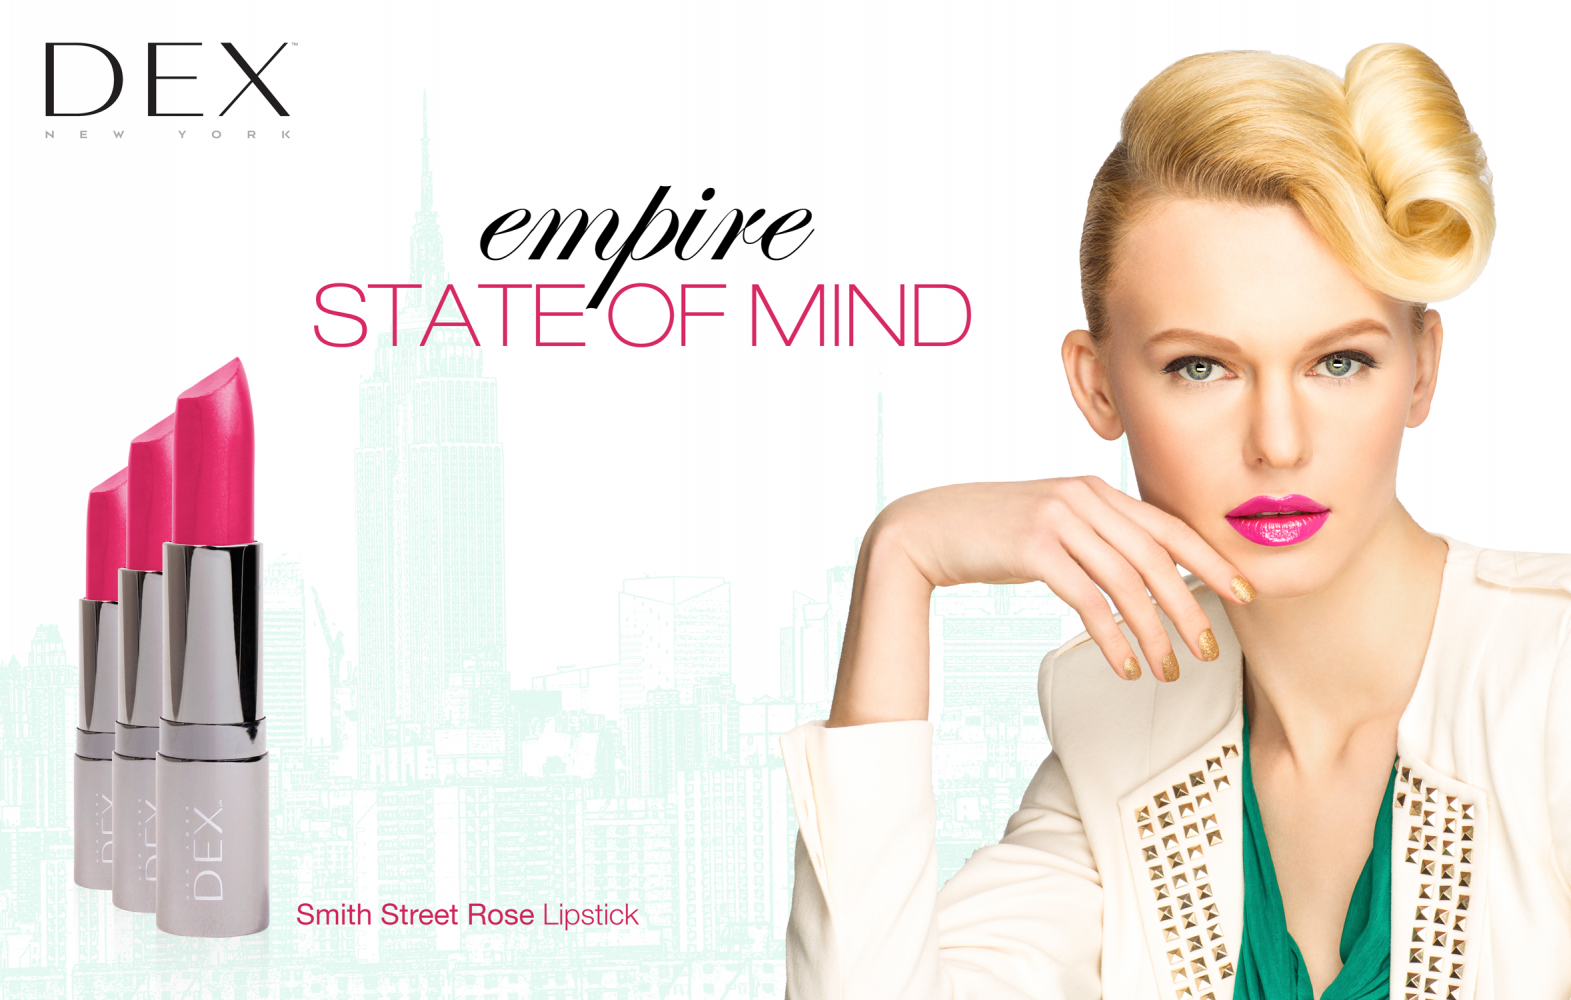 empire state of mind_Morgan